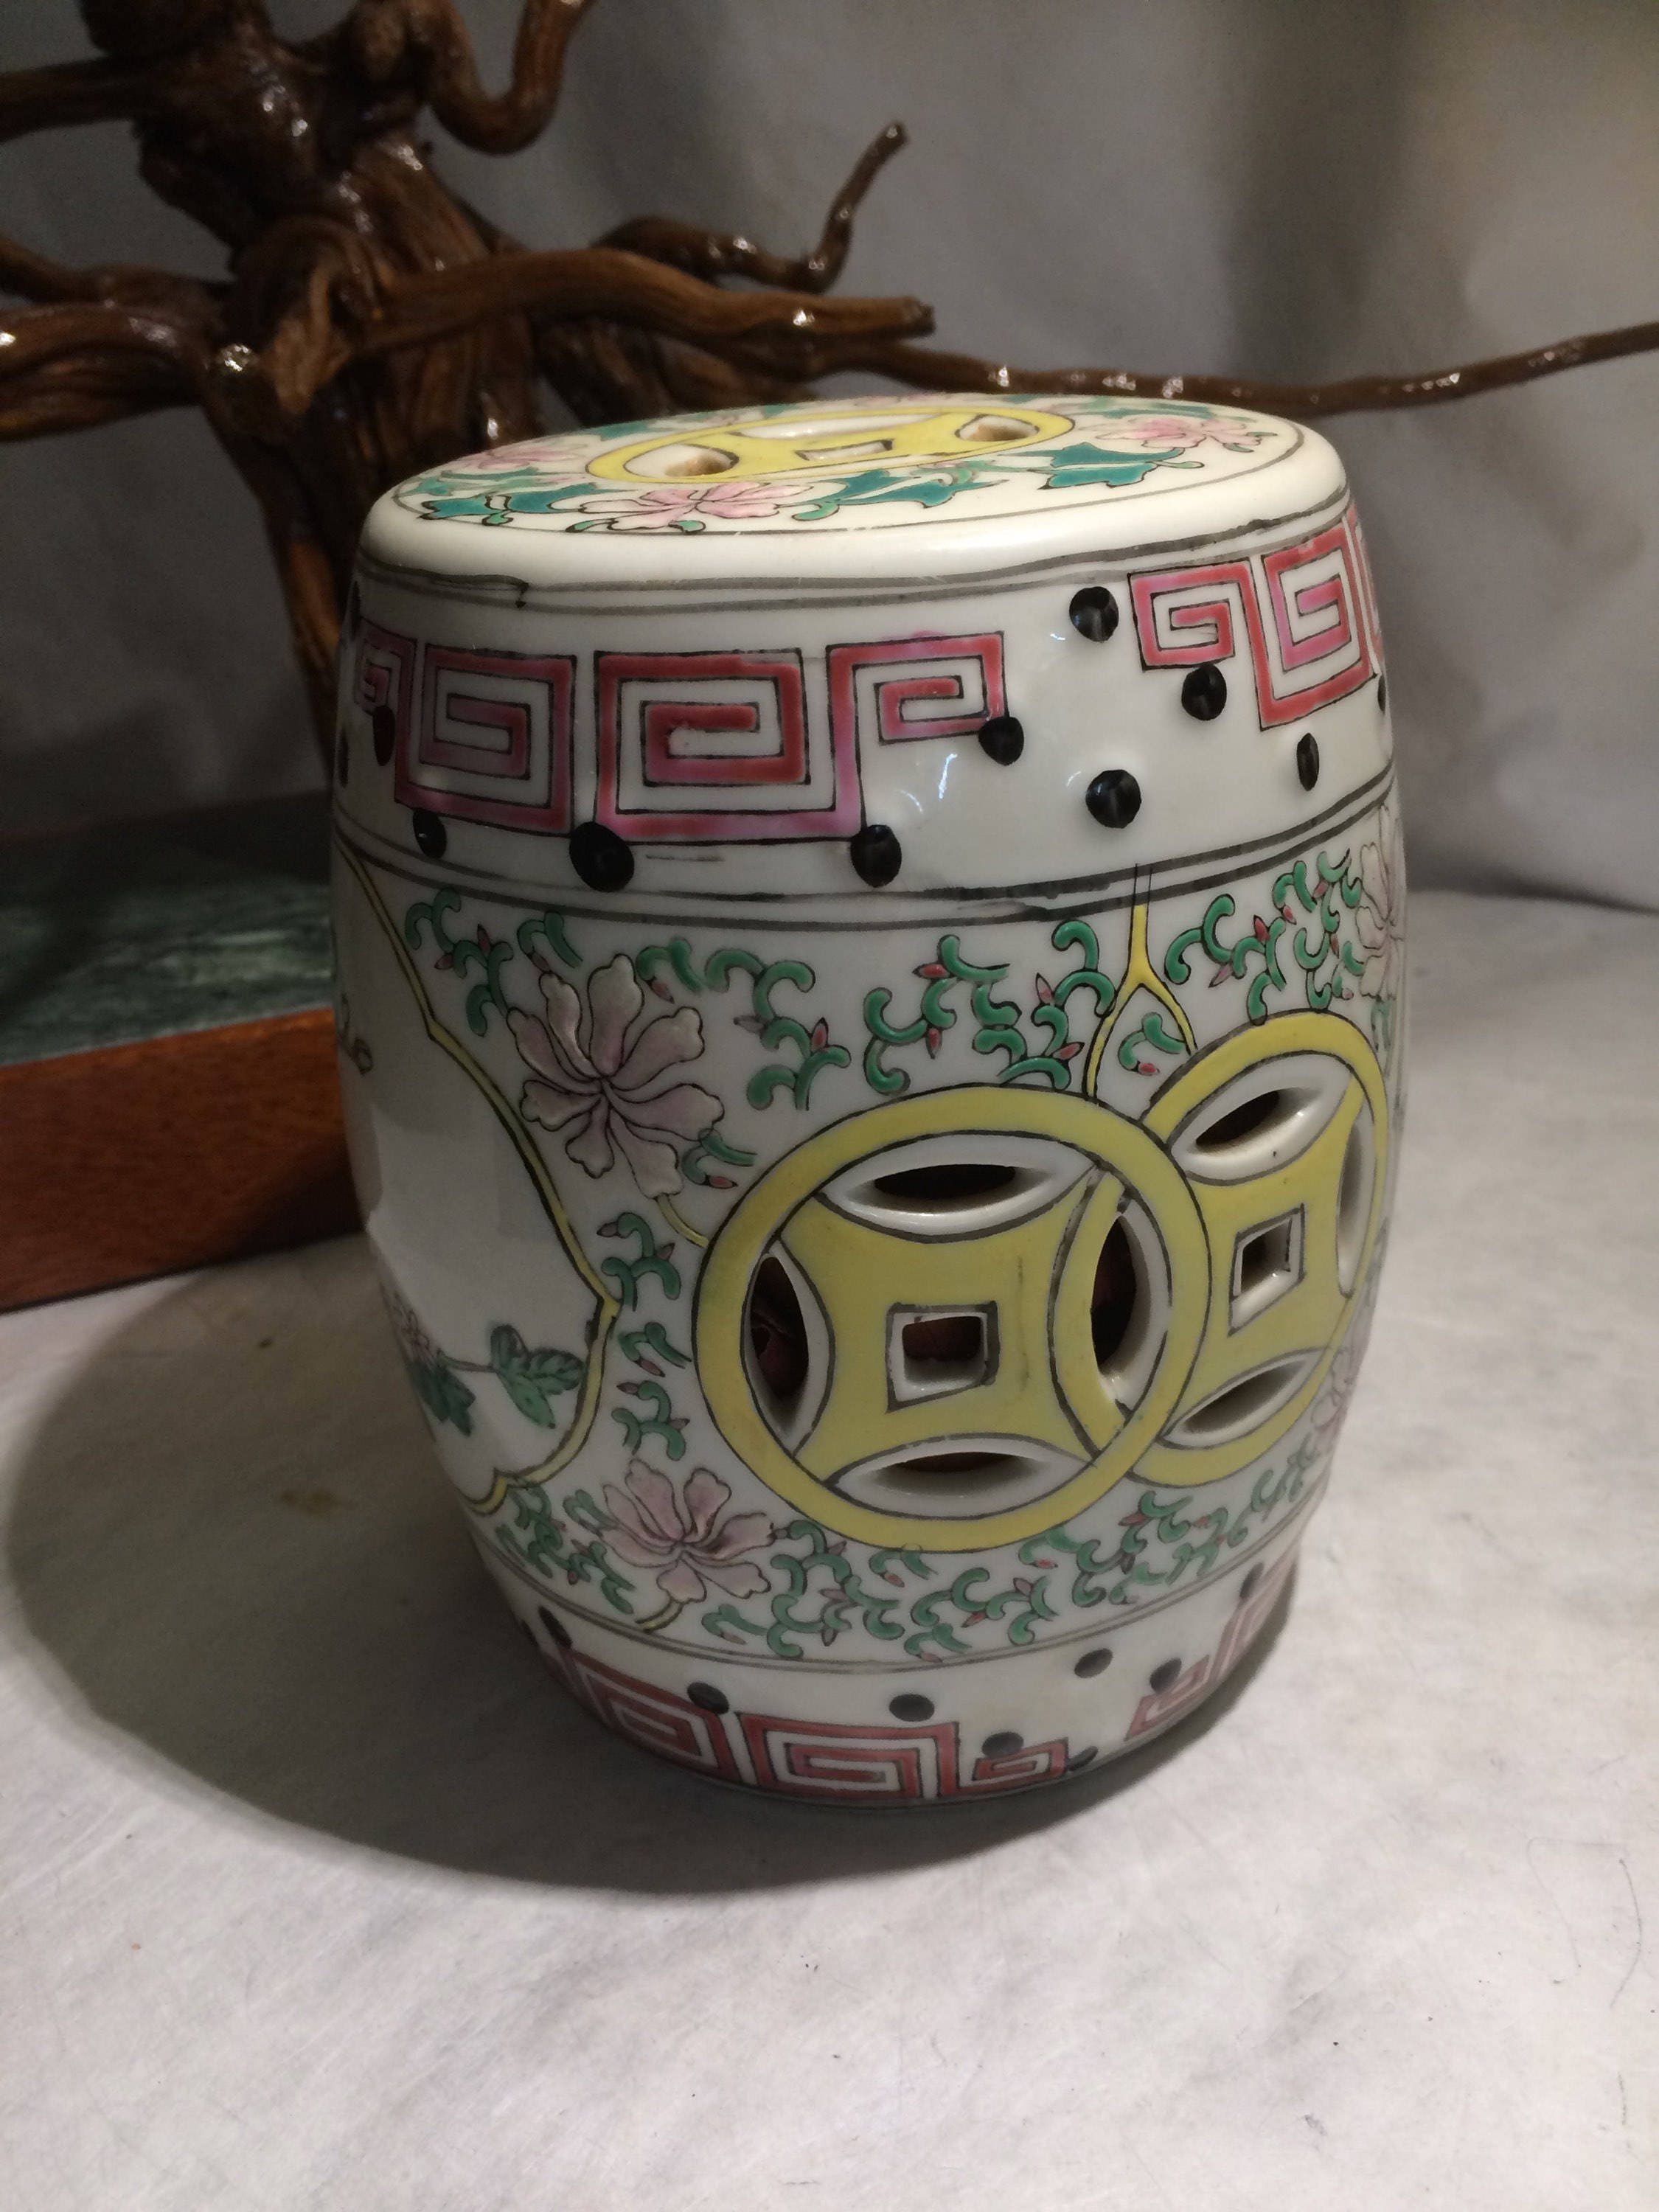 Wondrous Oriental Flower Themed Stool Design Ceramic Potpourri Holder Painted Potpourri Ginger Jar Oriental Garden Stool Design Theyellowbook Wood Chair Design Ideas Theyellowbookinfo